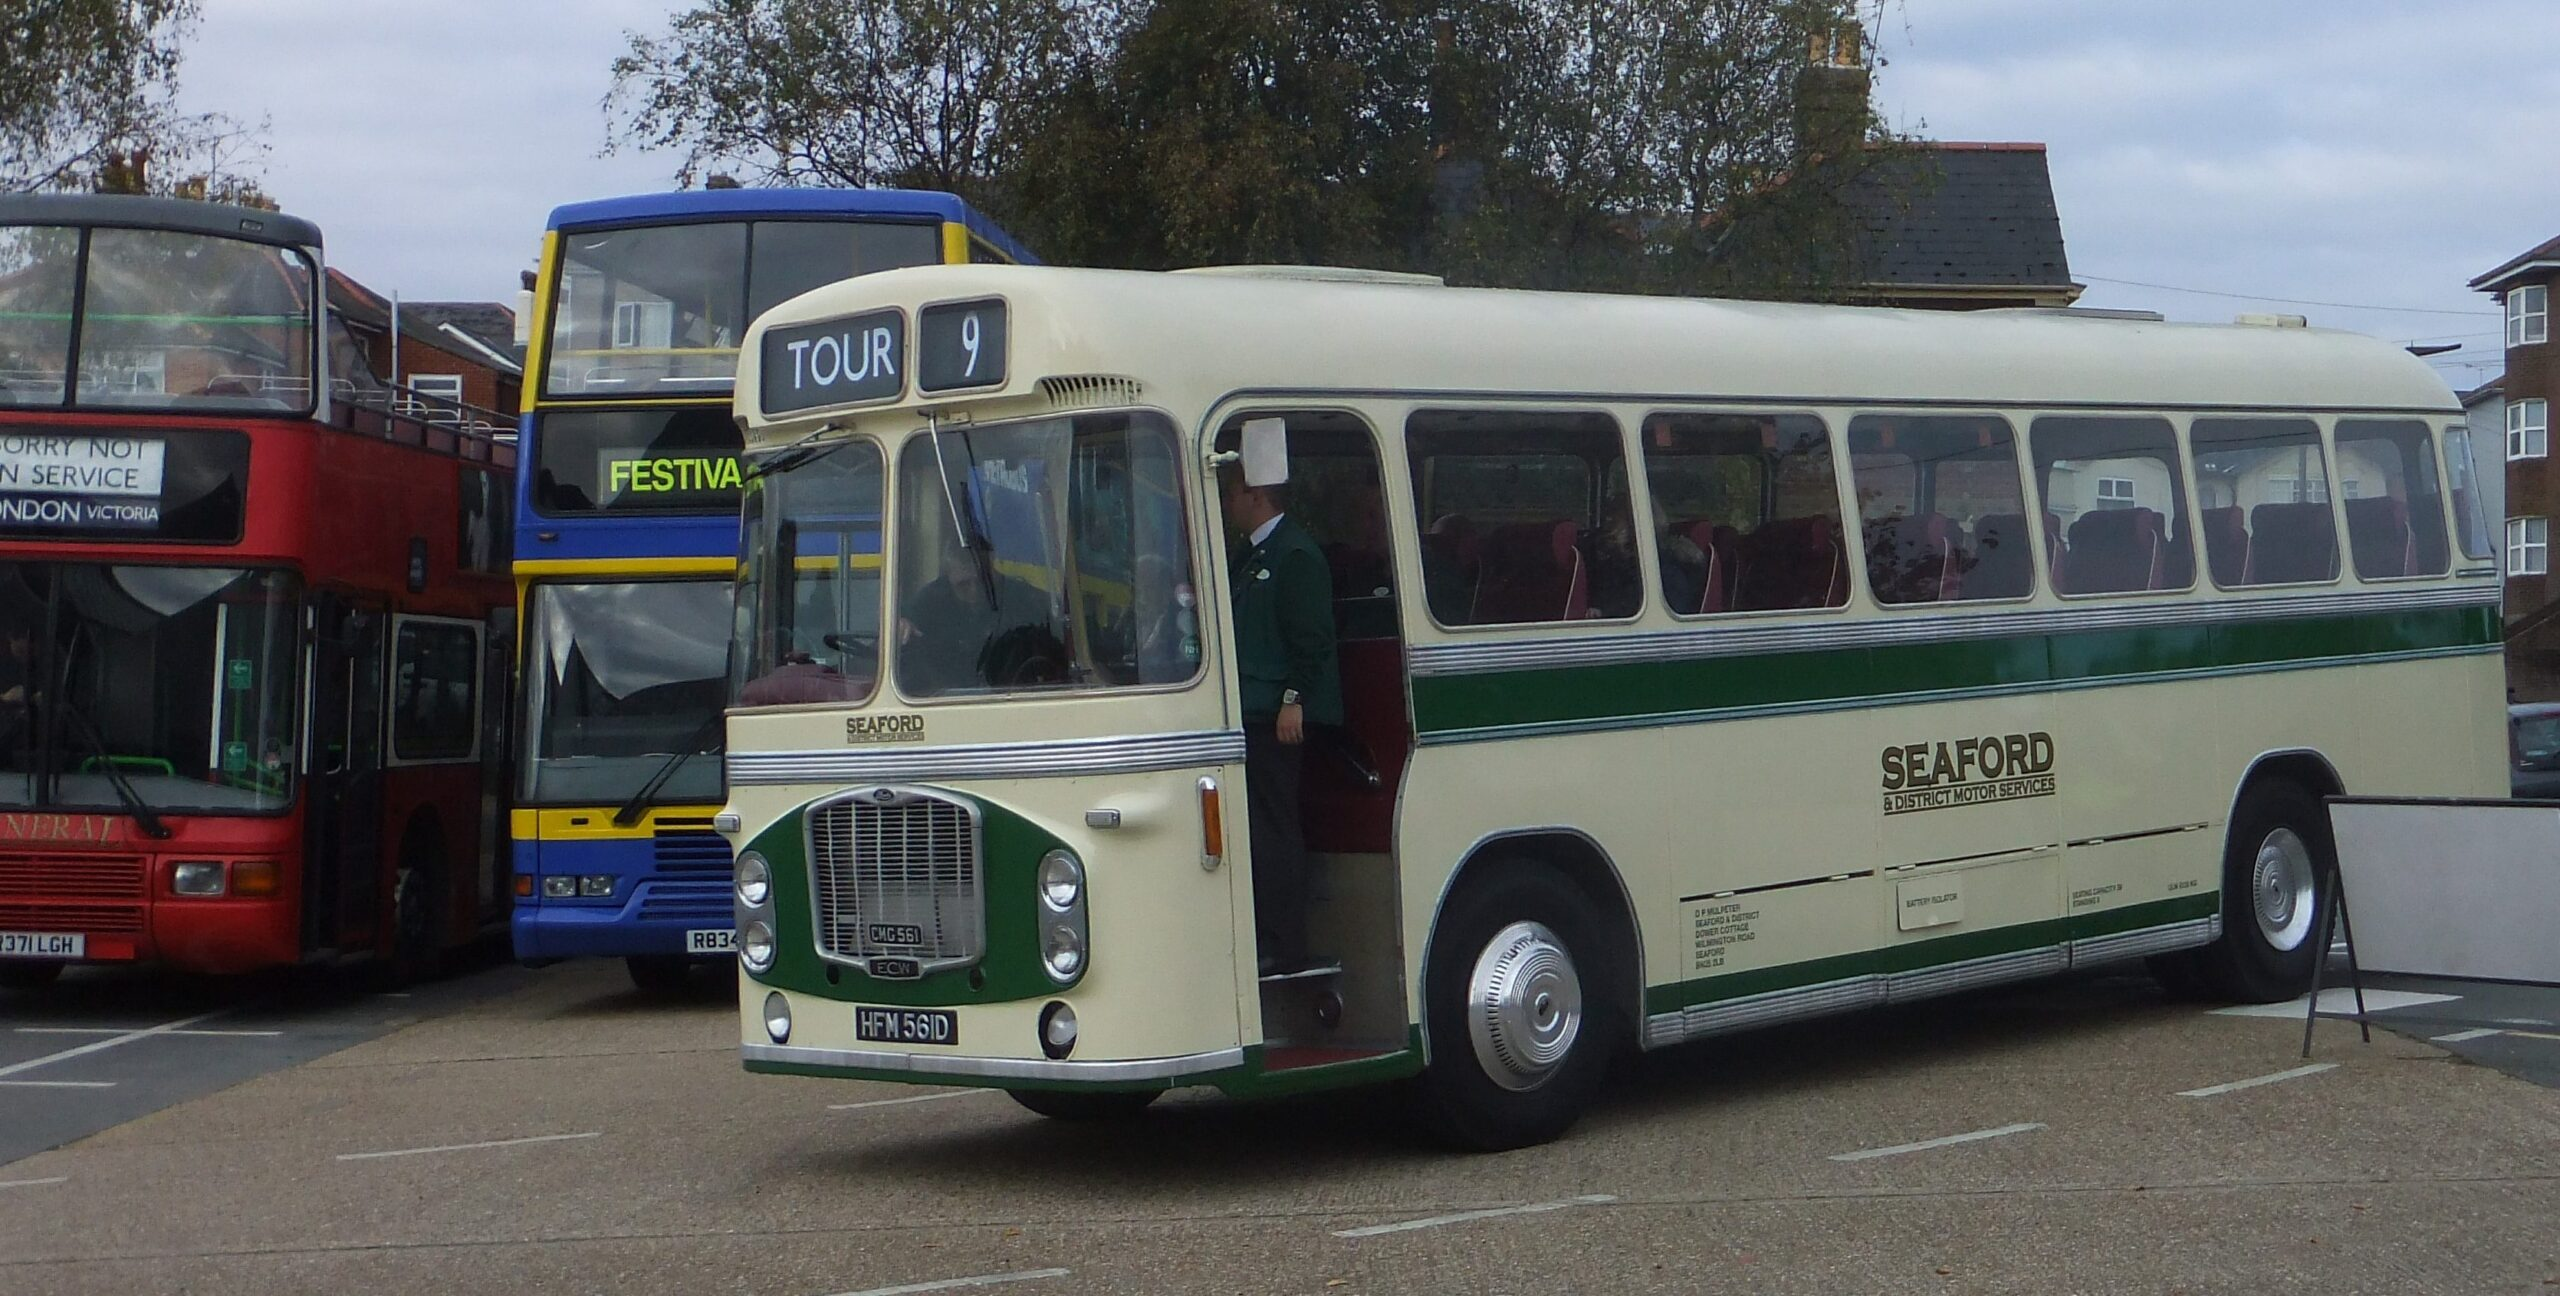 2015 1017 Beer and Buses 12 e1465578045884 scaled